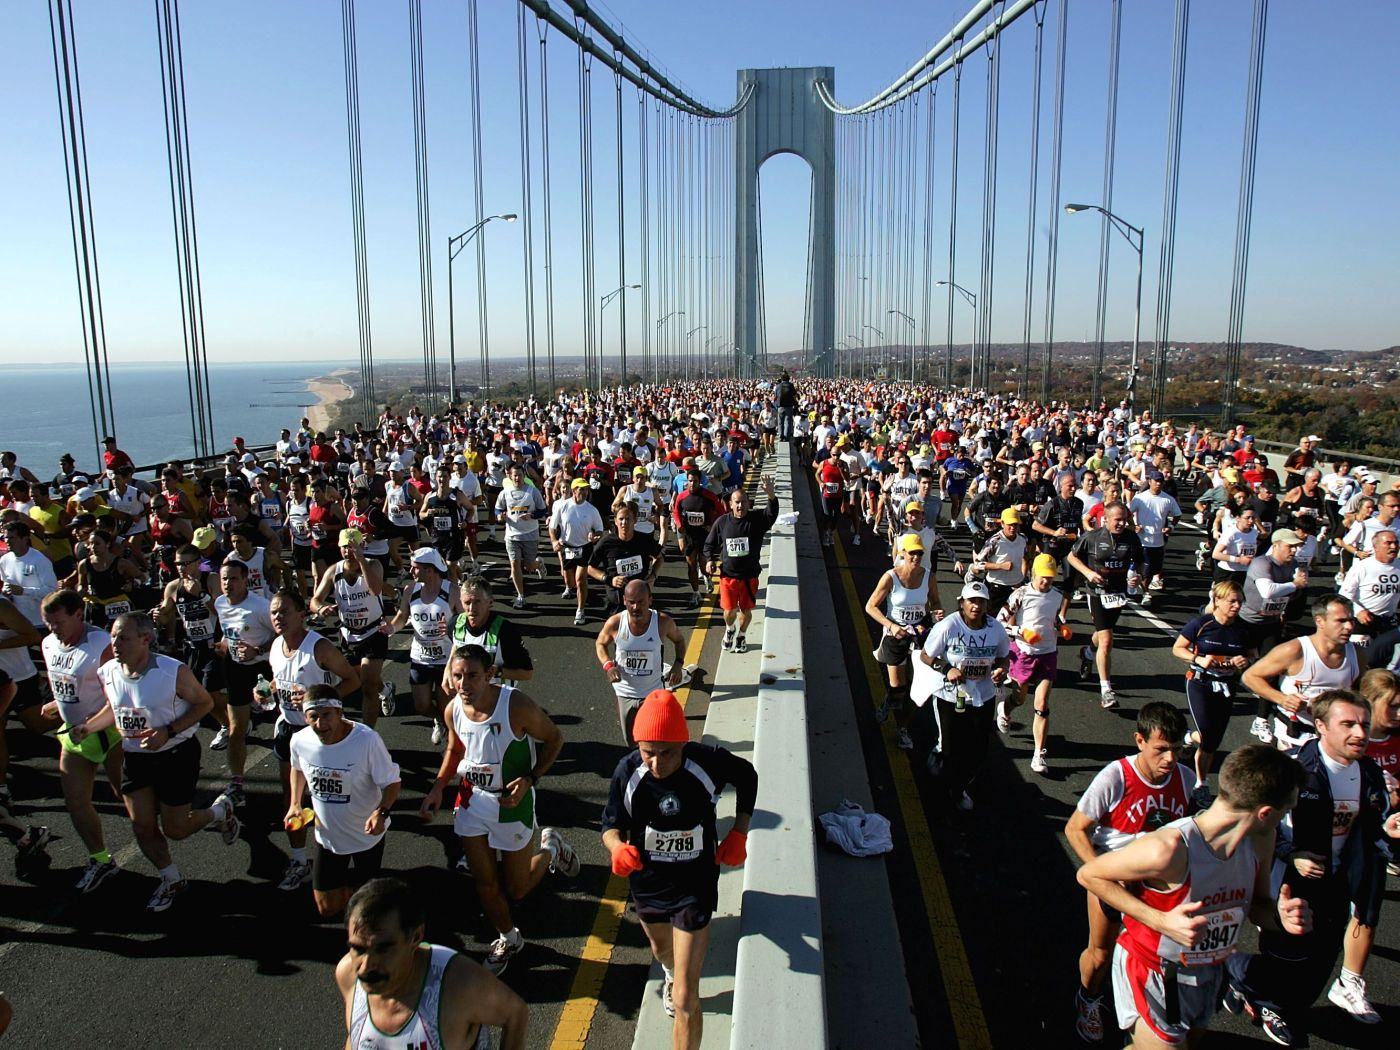 Do You Have to Qualify for the New York Marathon?